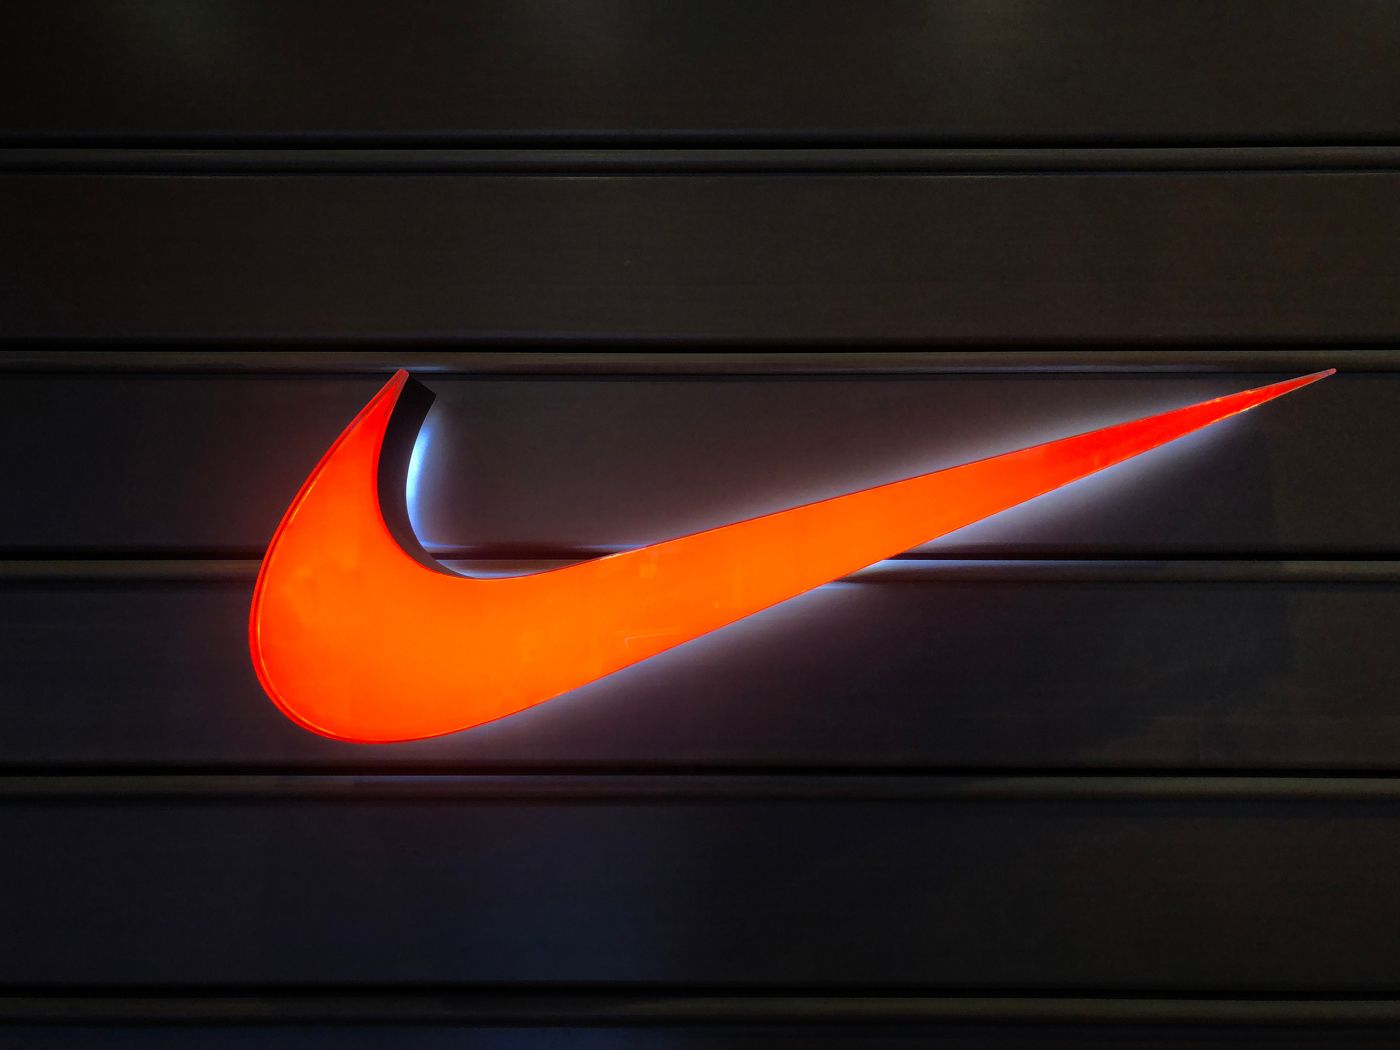 Nike NKE stock market news and analysis